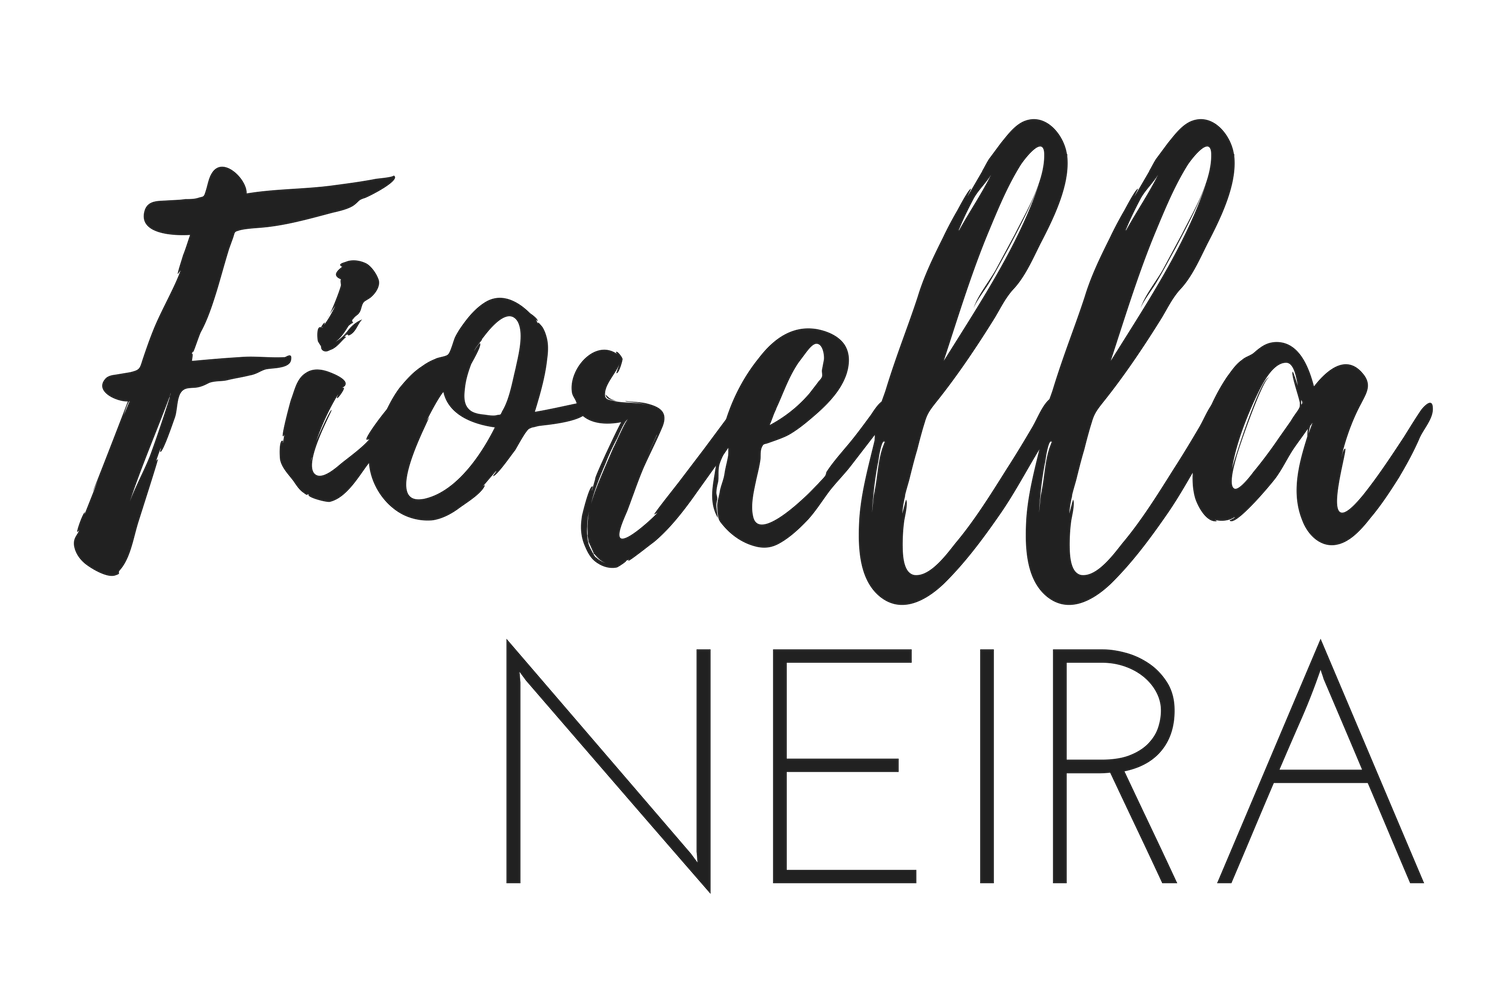 Fiorella Neira - Neira Event Group